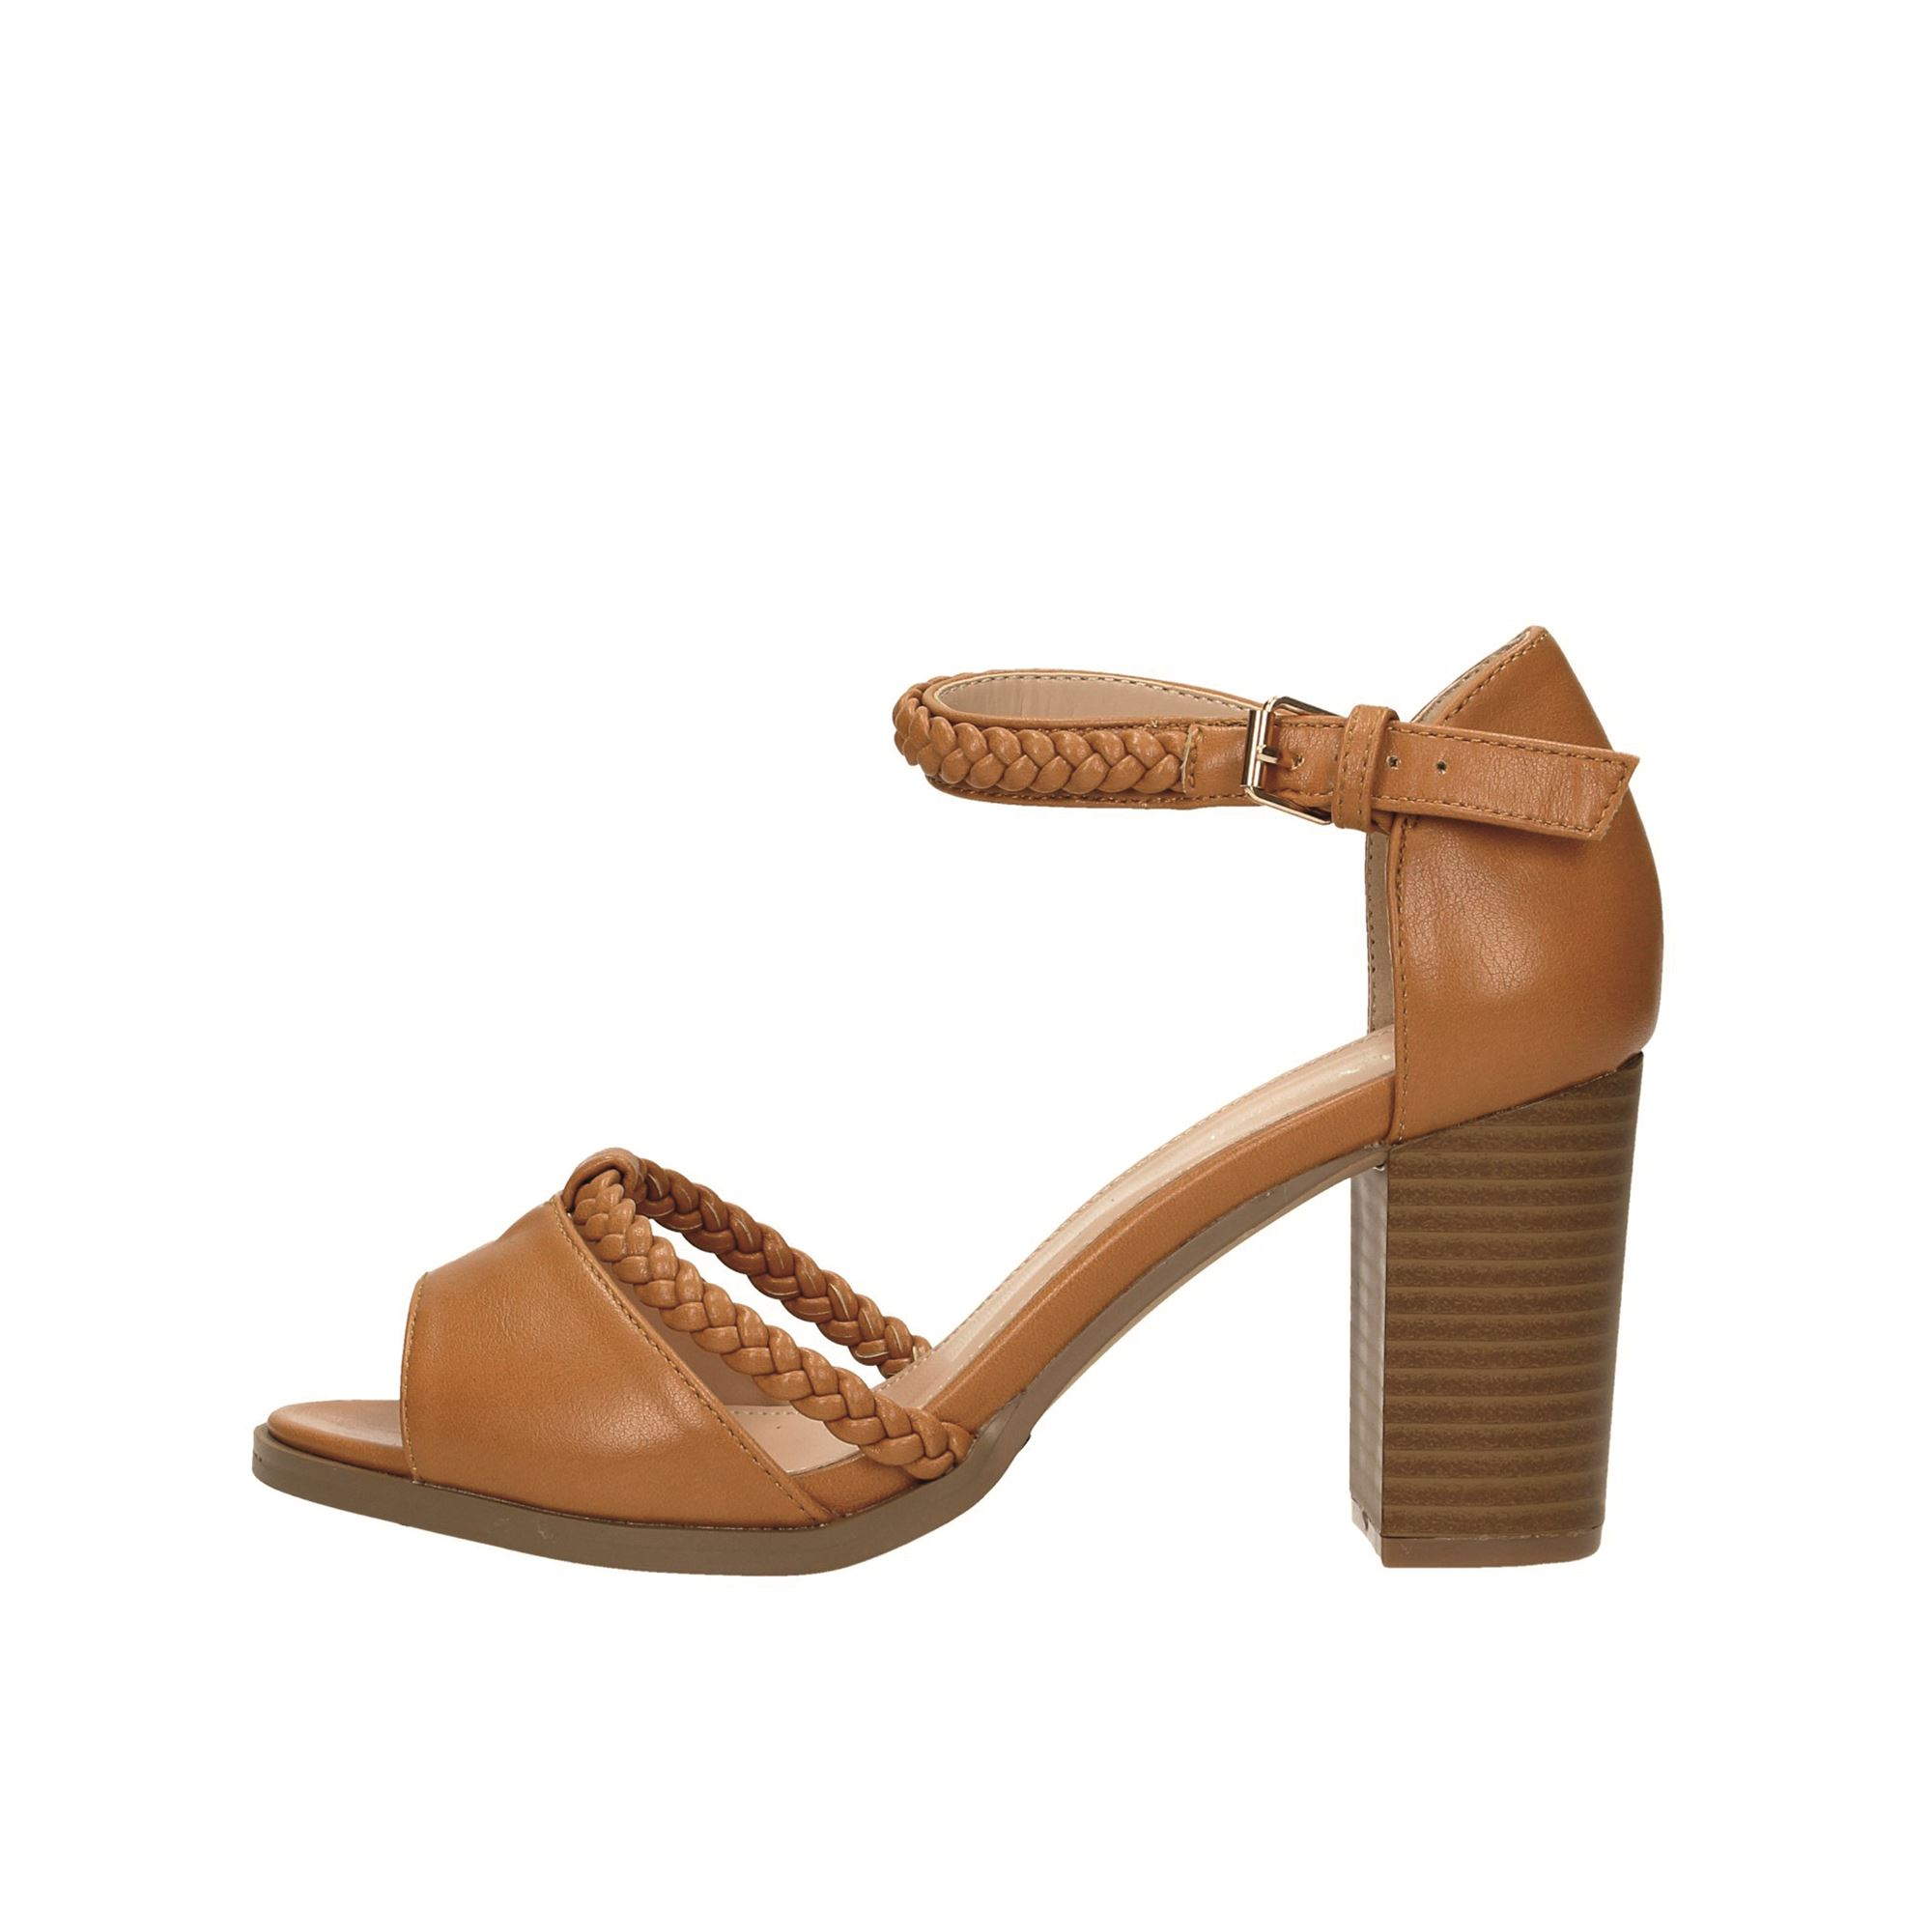 Tata Italia Shoes Woman Sandali Camel 9149L-38